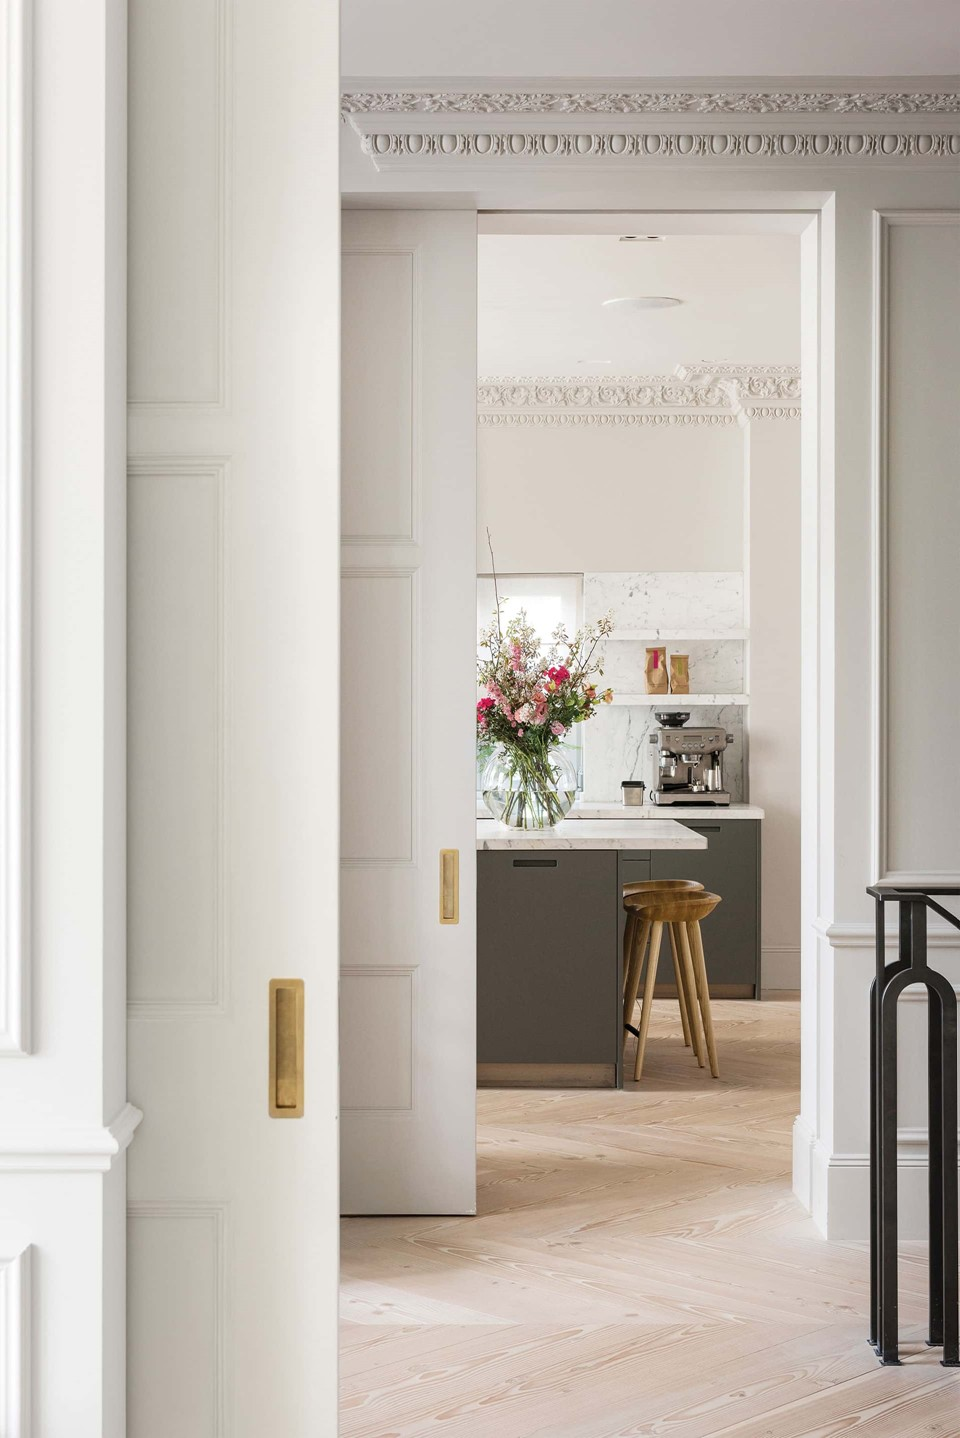 douglas flooring lye white soap kitchen dinesen